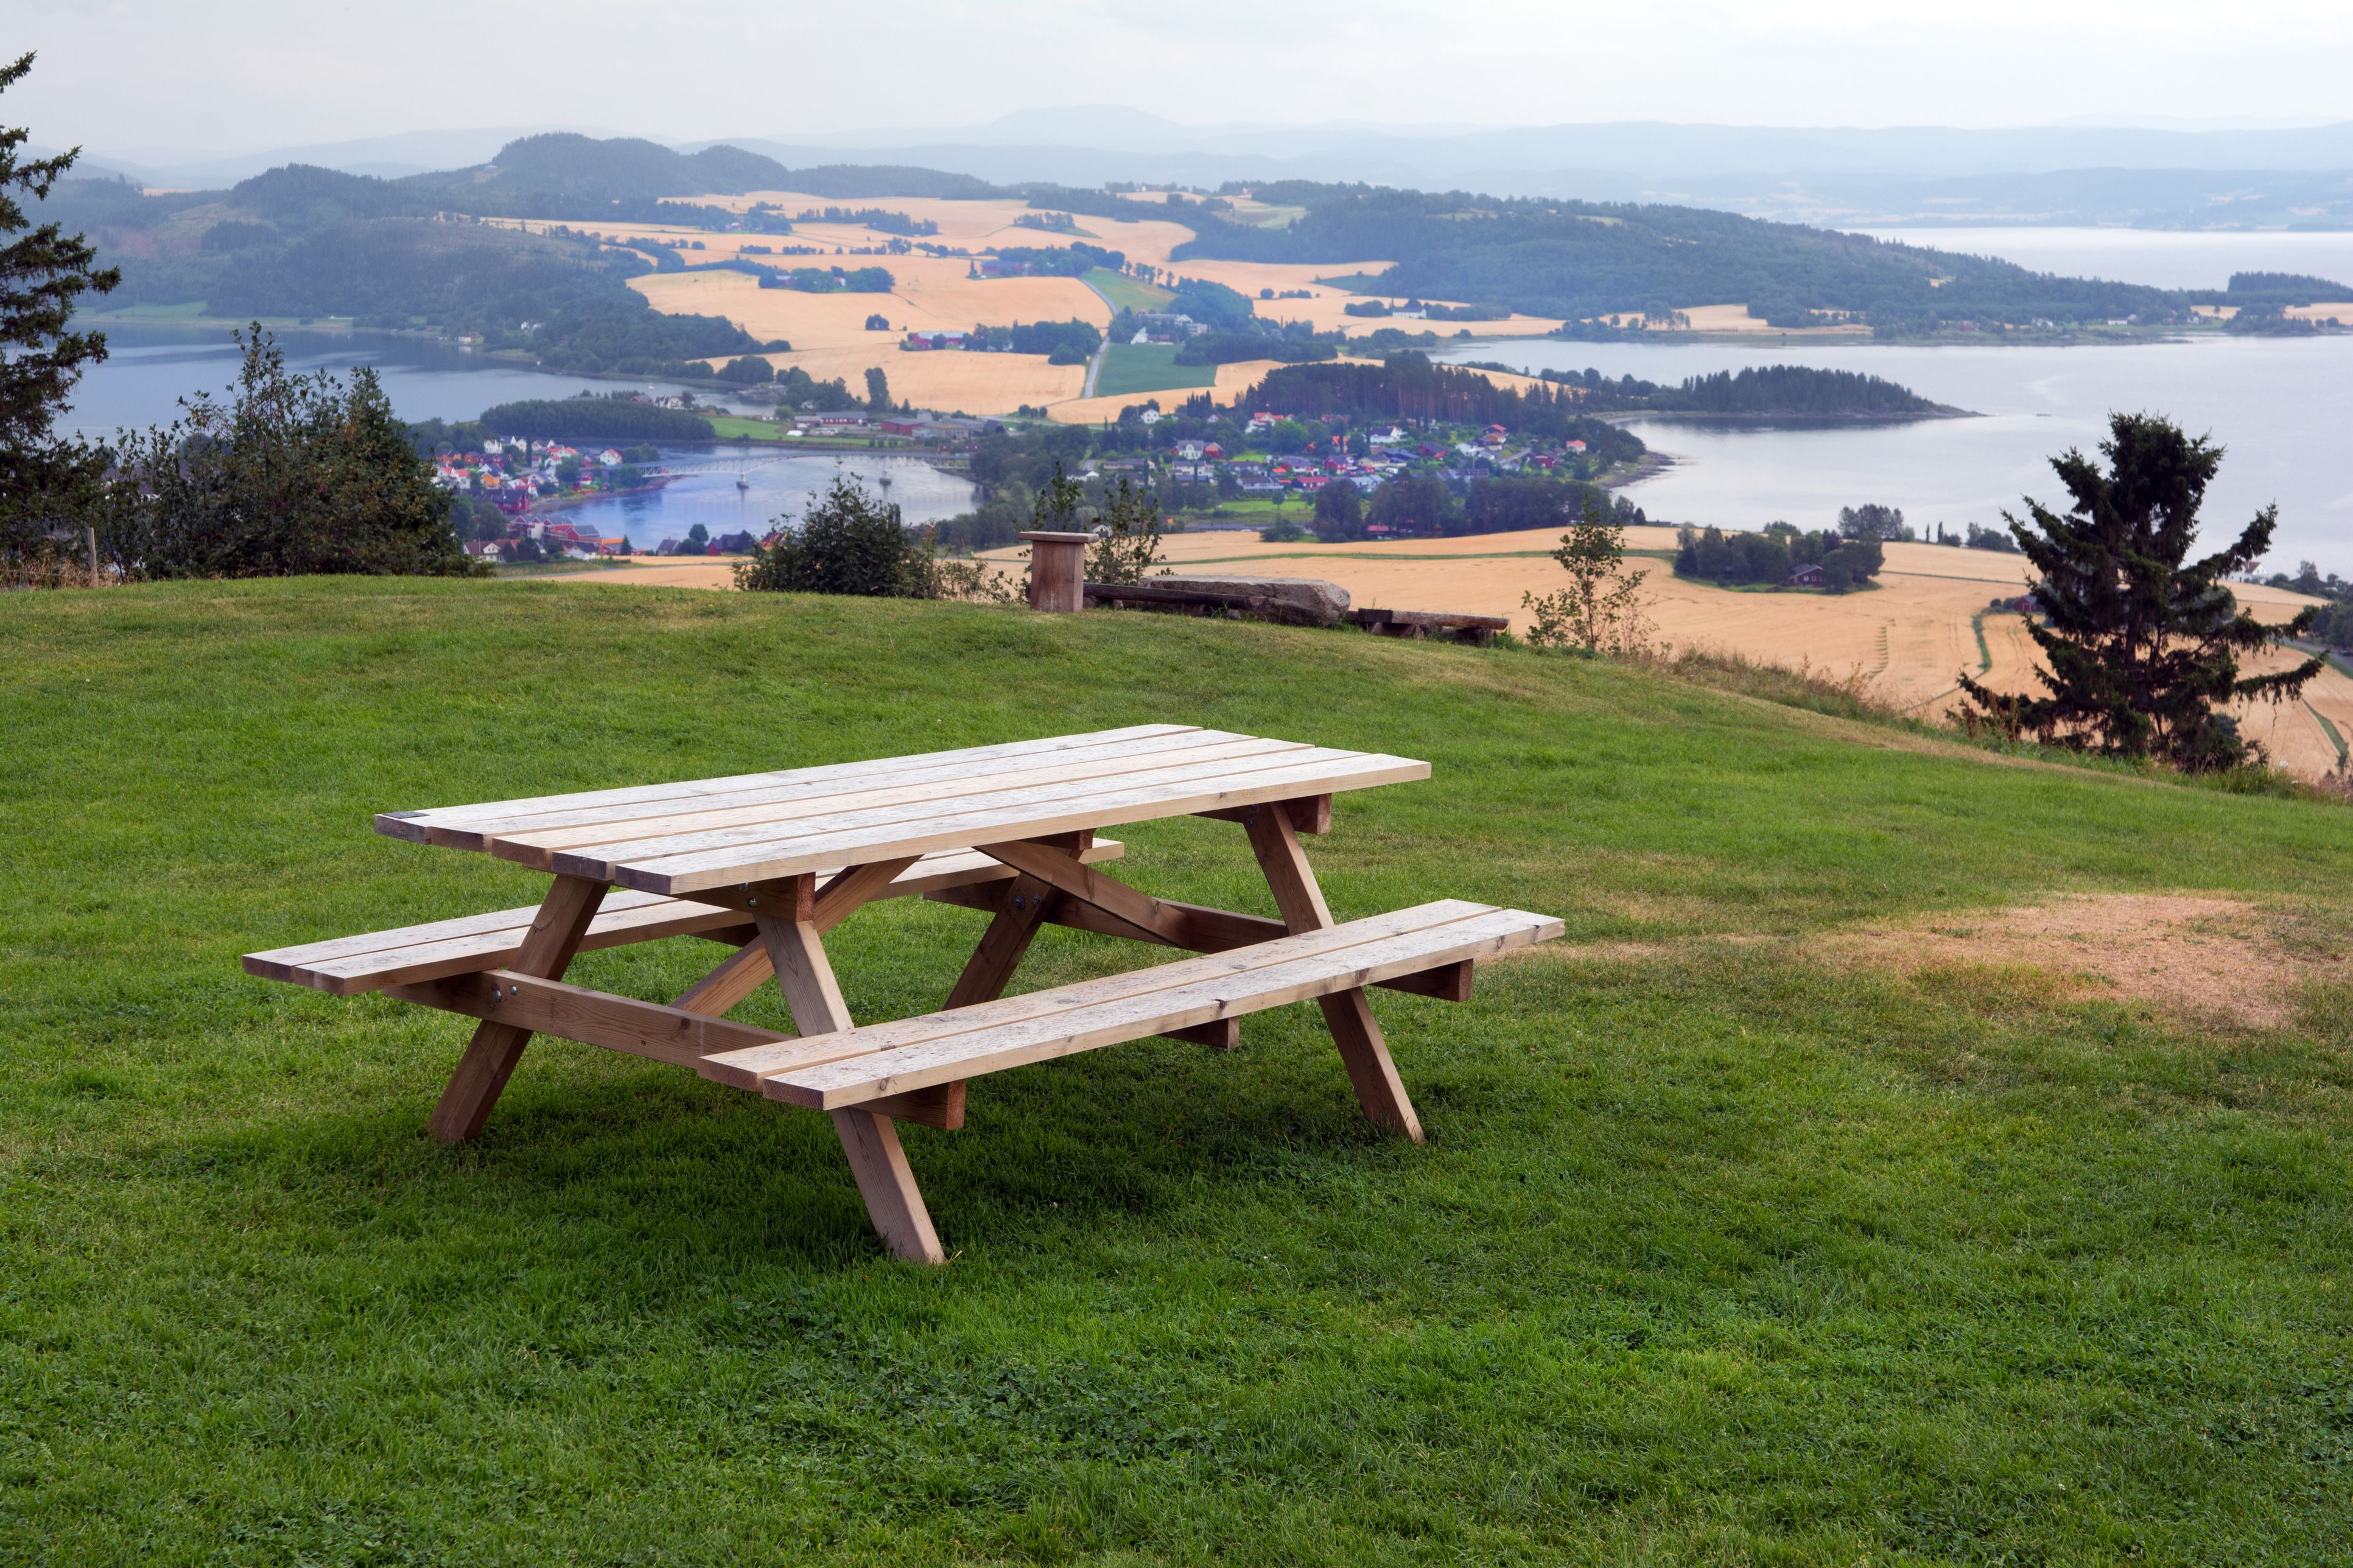 Free Picnic Table Plans In All Shapes And Sizes - One sided picnic table